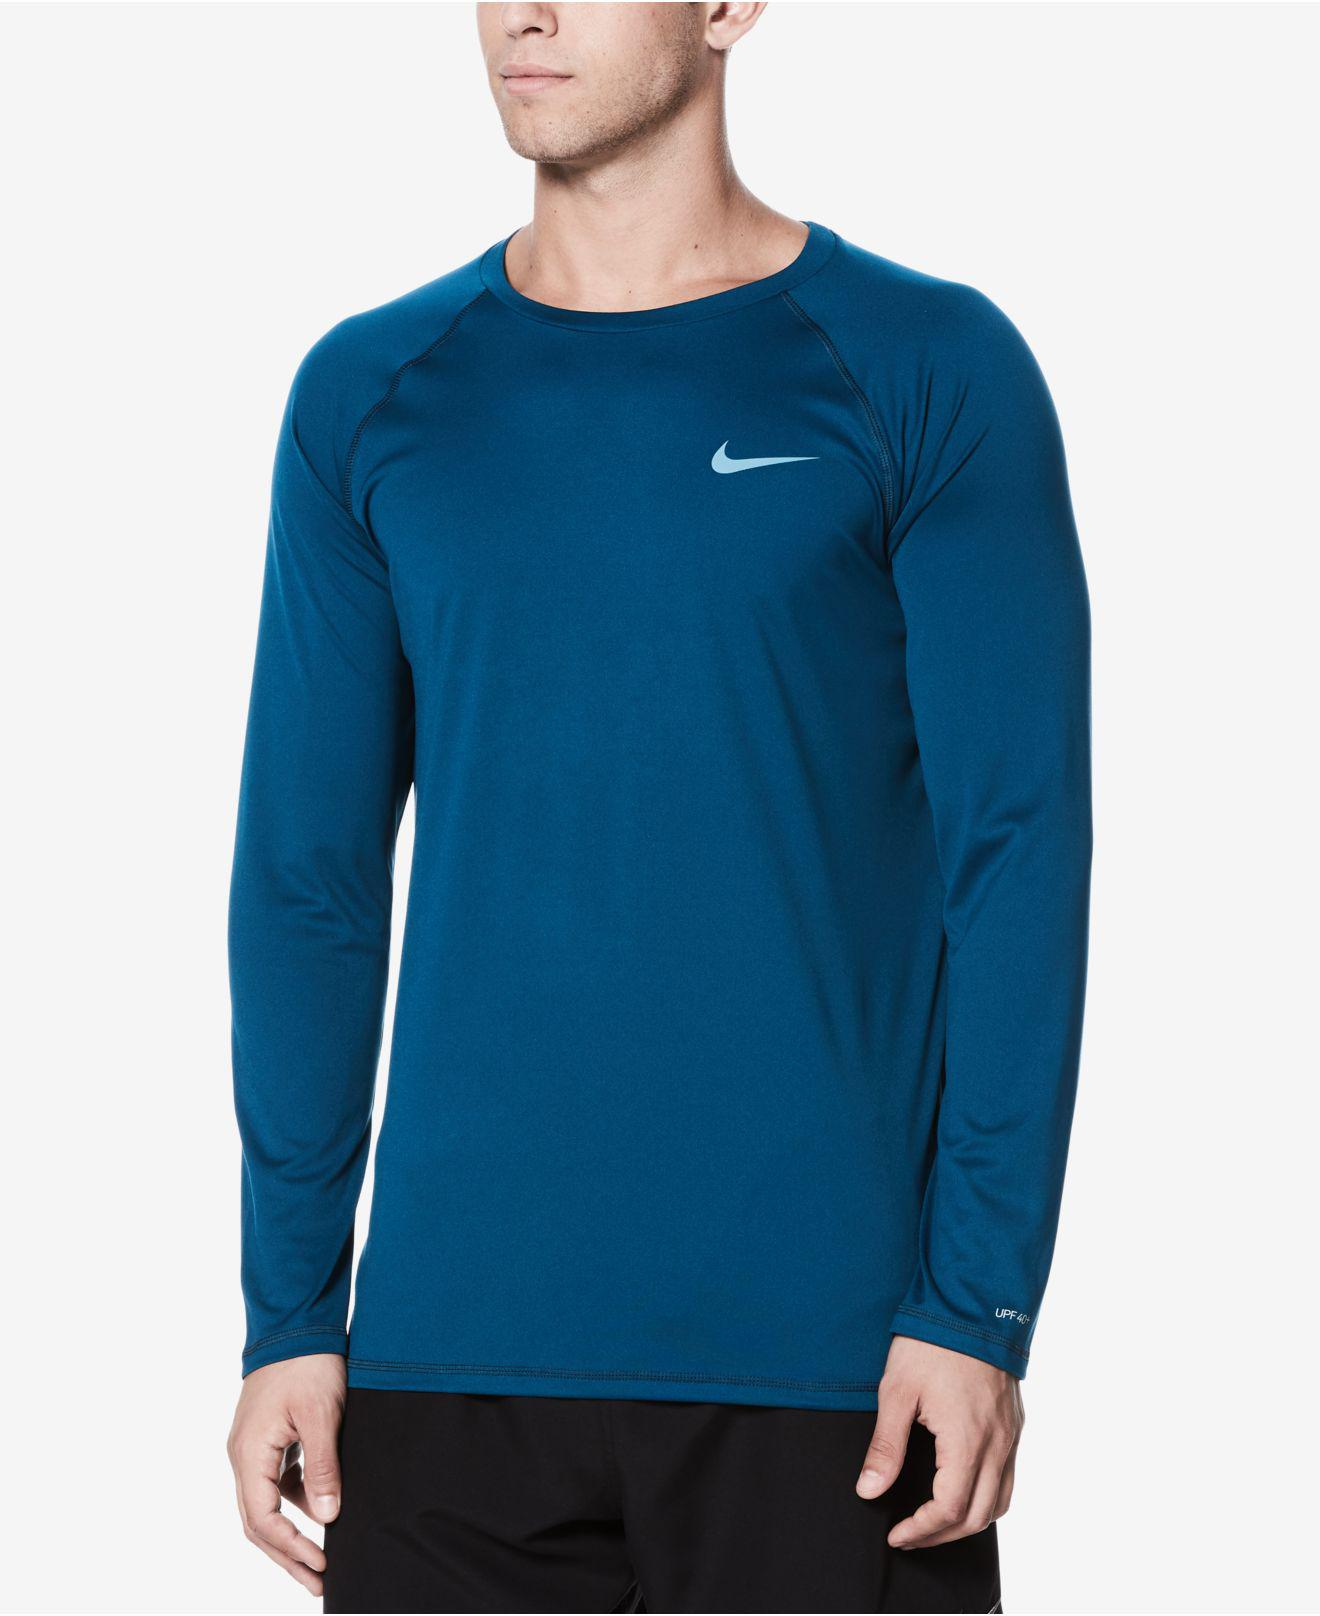 4e9a0d70 Nike Long-sleeve Hydroguard T-shirt in Blue for Men - Lyst